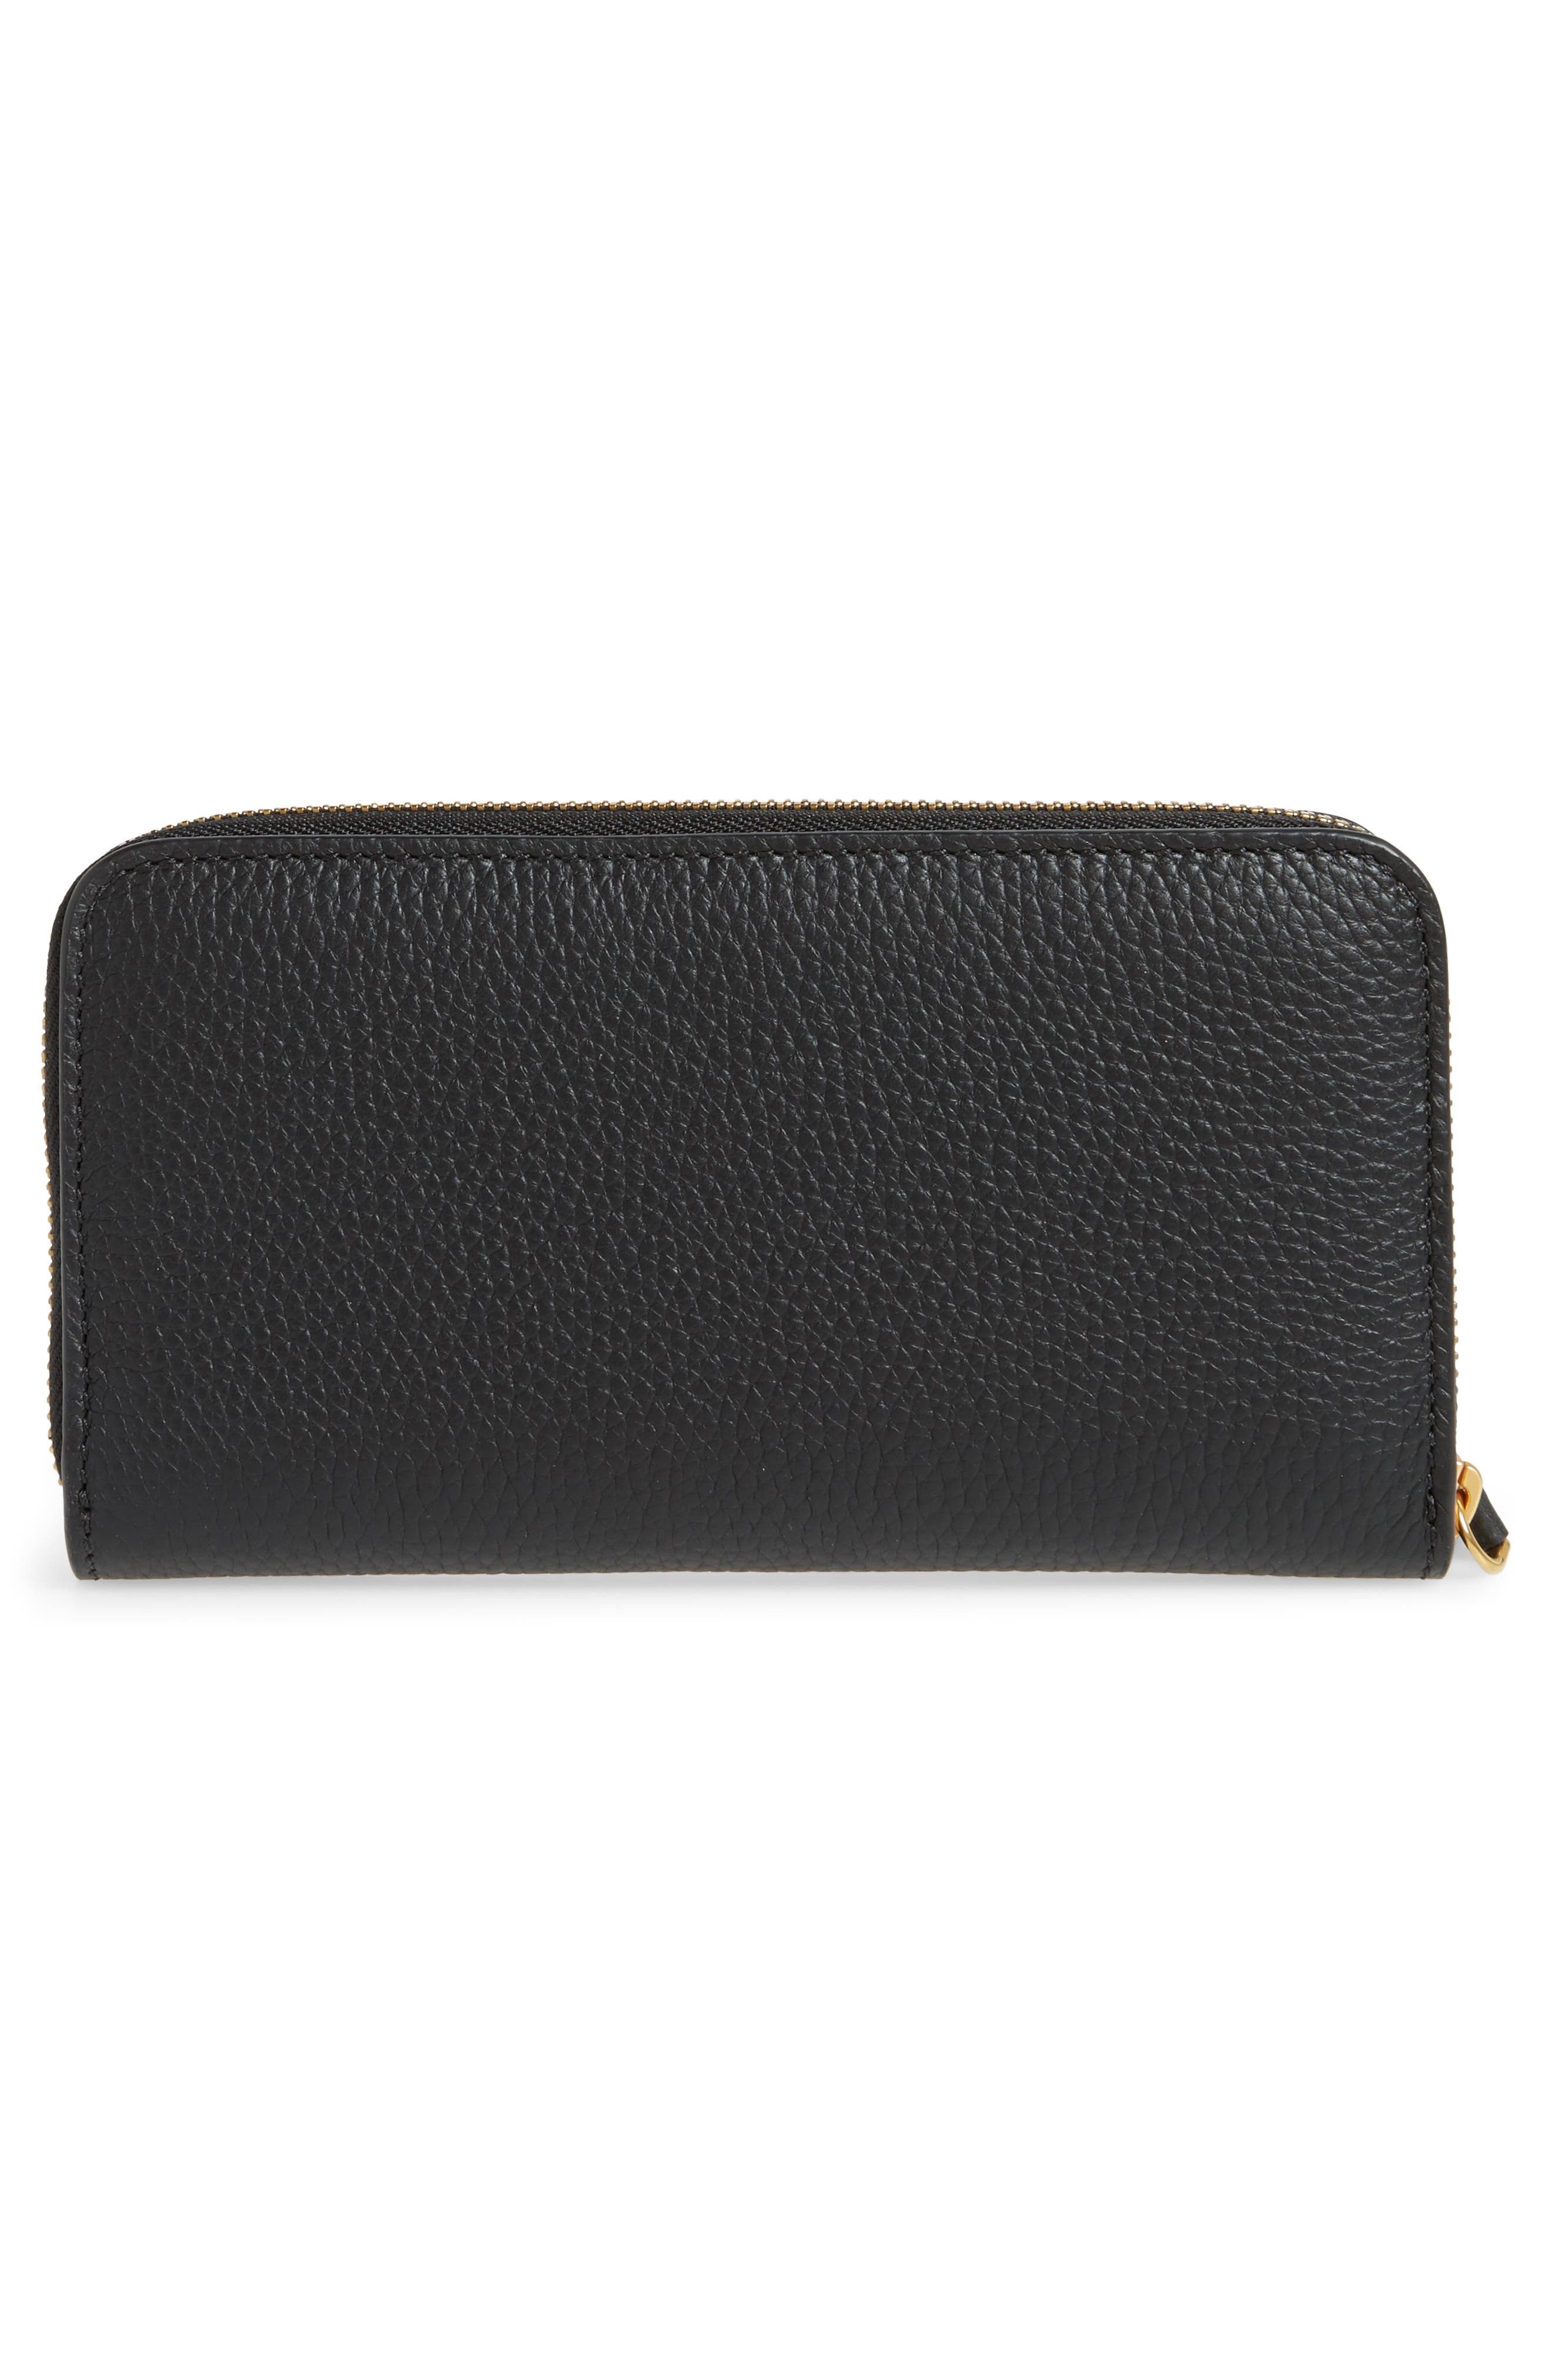 Leather Zip-Around Wallet,                             Alternate thumbnail 4, color,                             Black